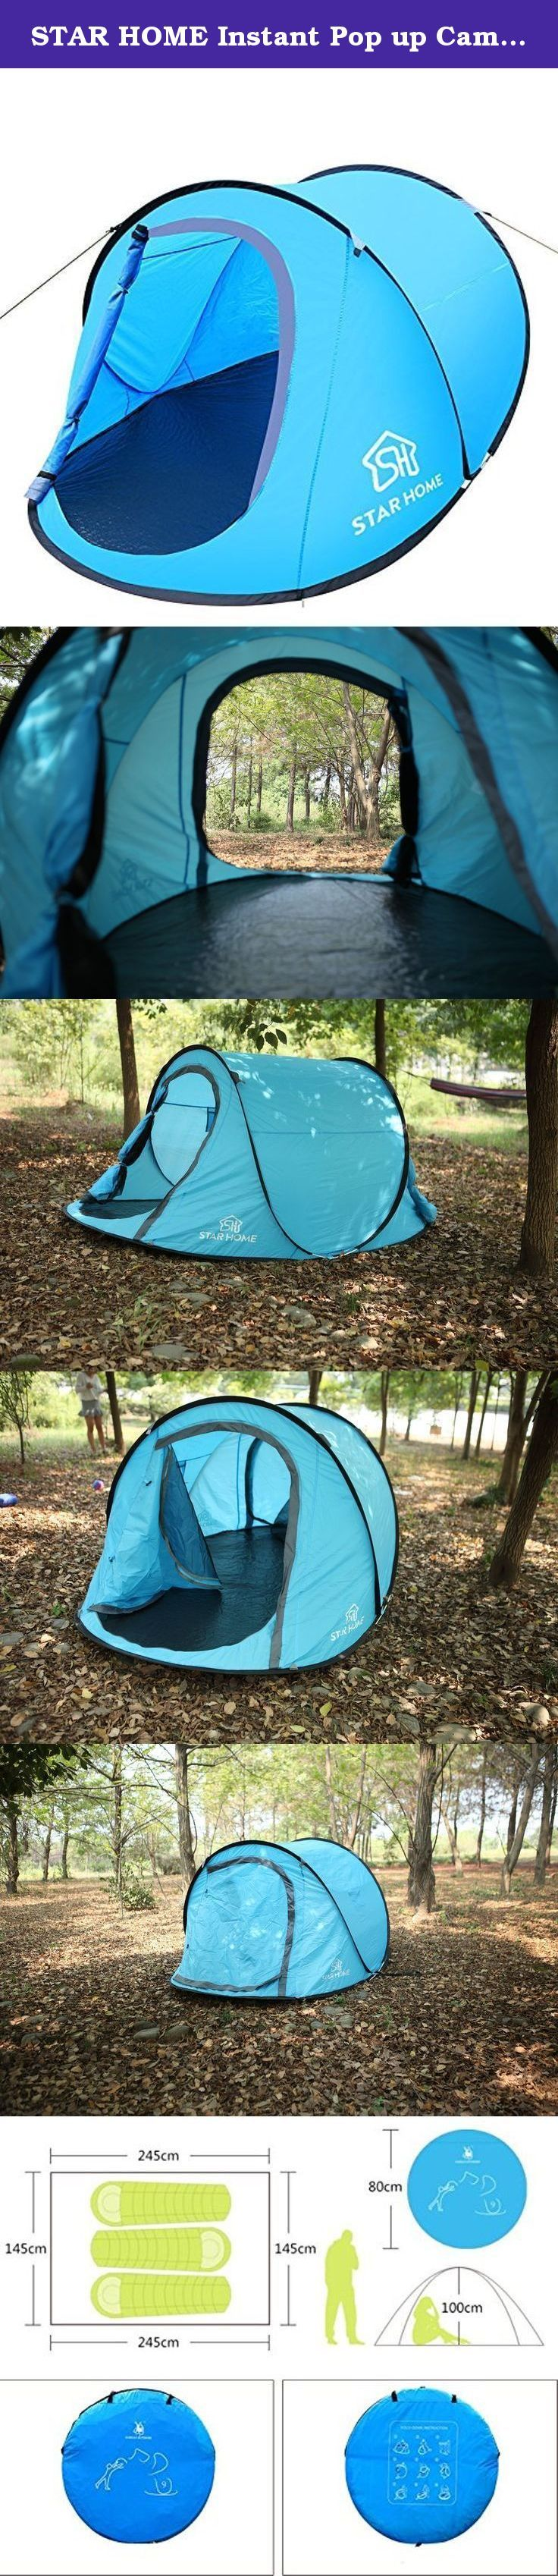 STAR HOME Instant Pop up Camping Tents (Blue). STAR HOME instant pop up tents, there is no need to attach any additional components, poles or covers to assemble! -------- Just Throw it, it will Pop Up! It comes in a circular carry bag with straps that can be used to carry the tent on your shoulder. Though factory said this tent is for 3 persons -- it really depends on the size of the persons. It is also a great gift for kids as play house. Open on both ends. Bottom is made of a durable…